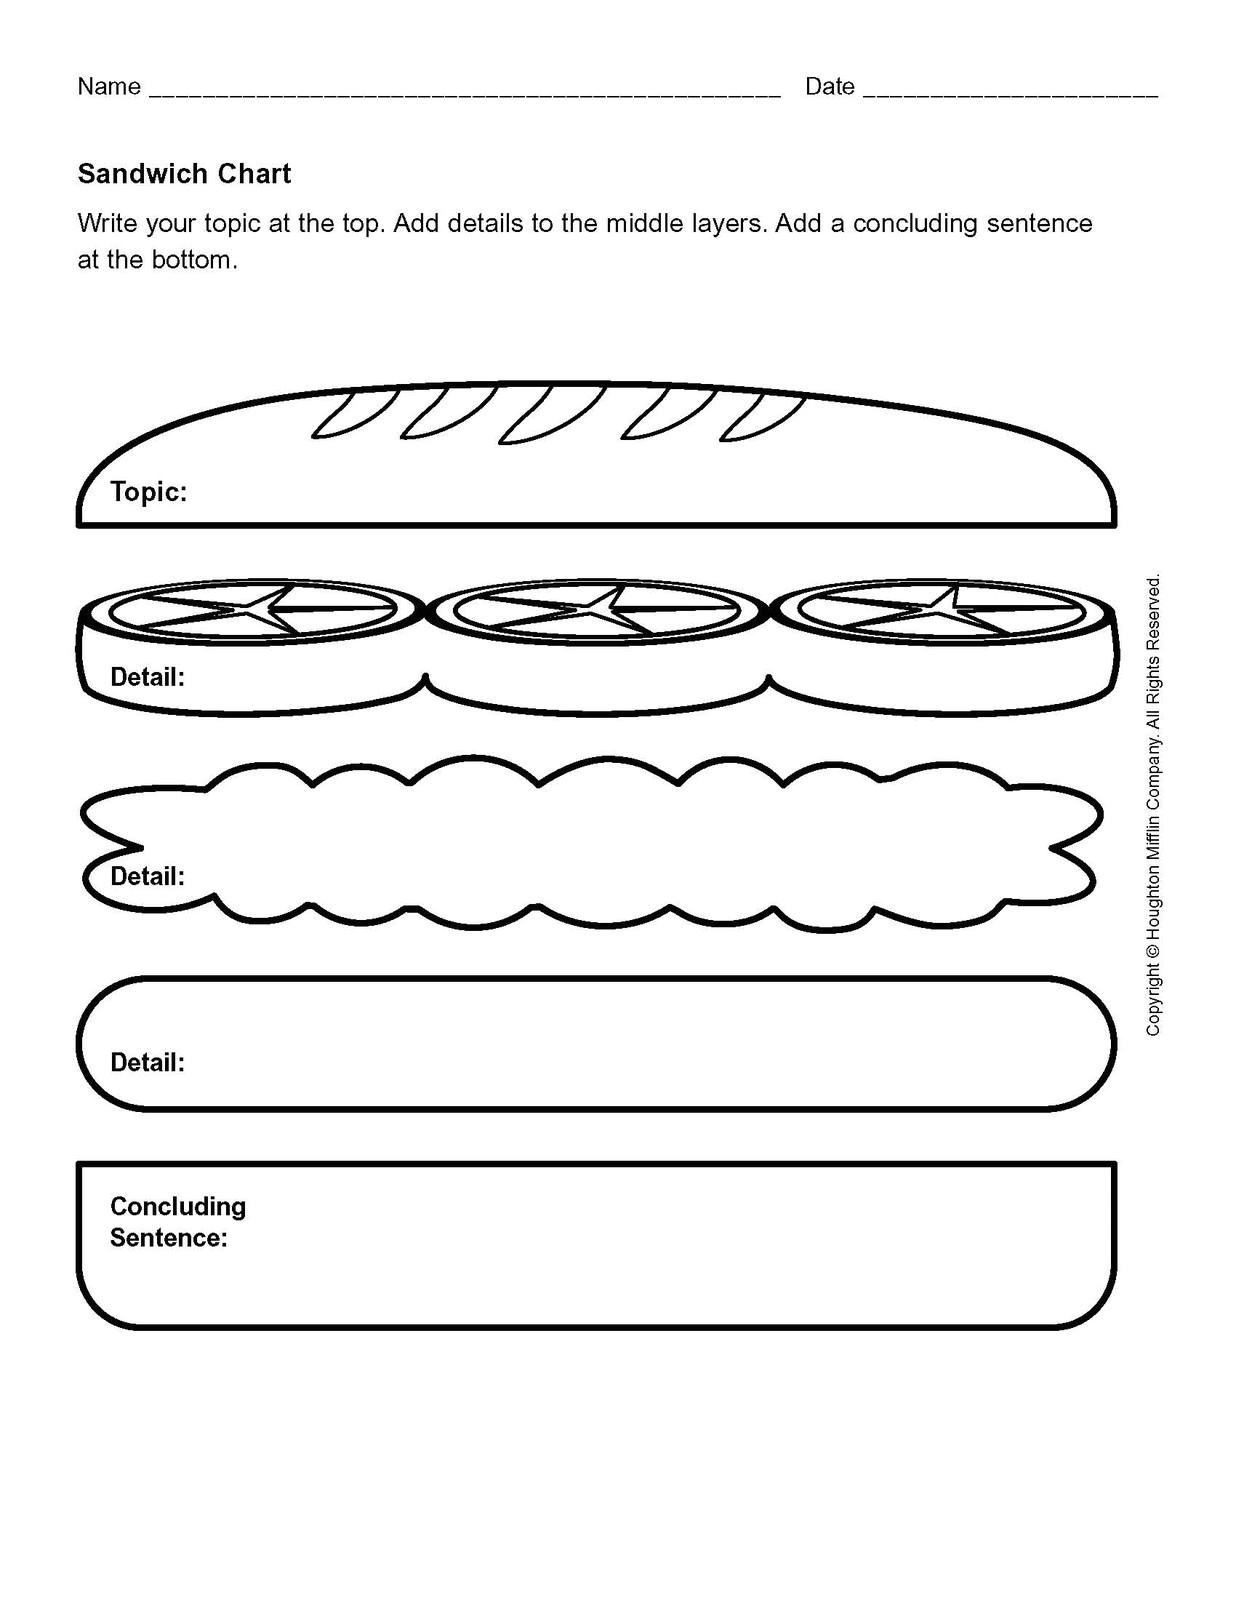 Sandwich Template for Writing How to Make A Sandwich Essay order Essay